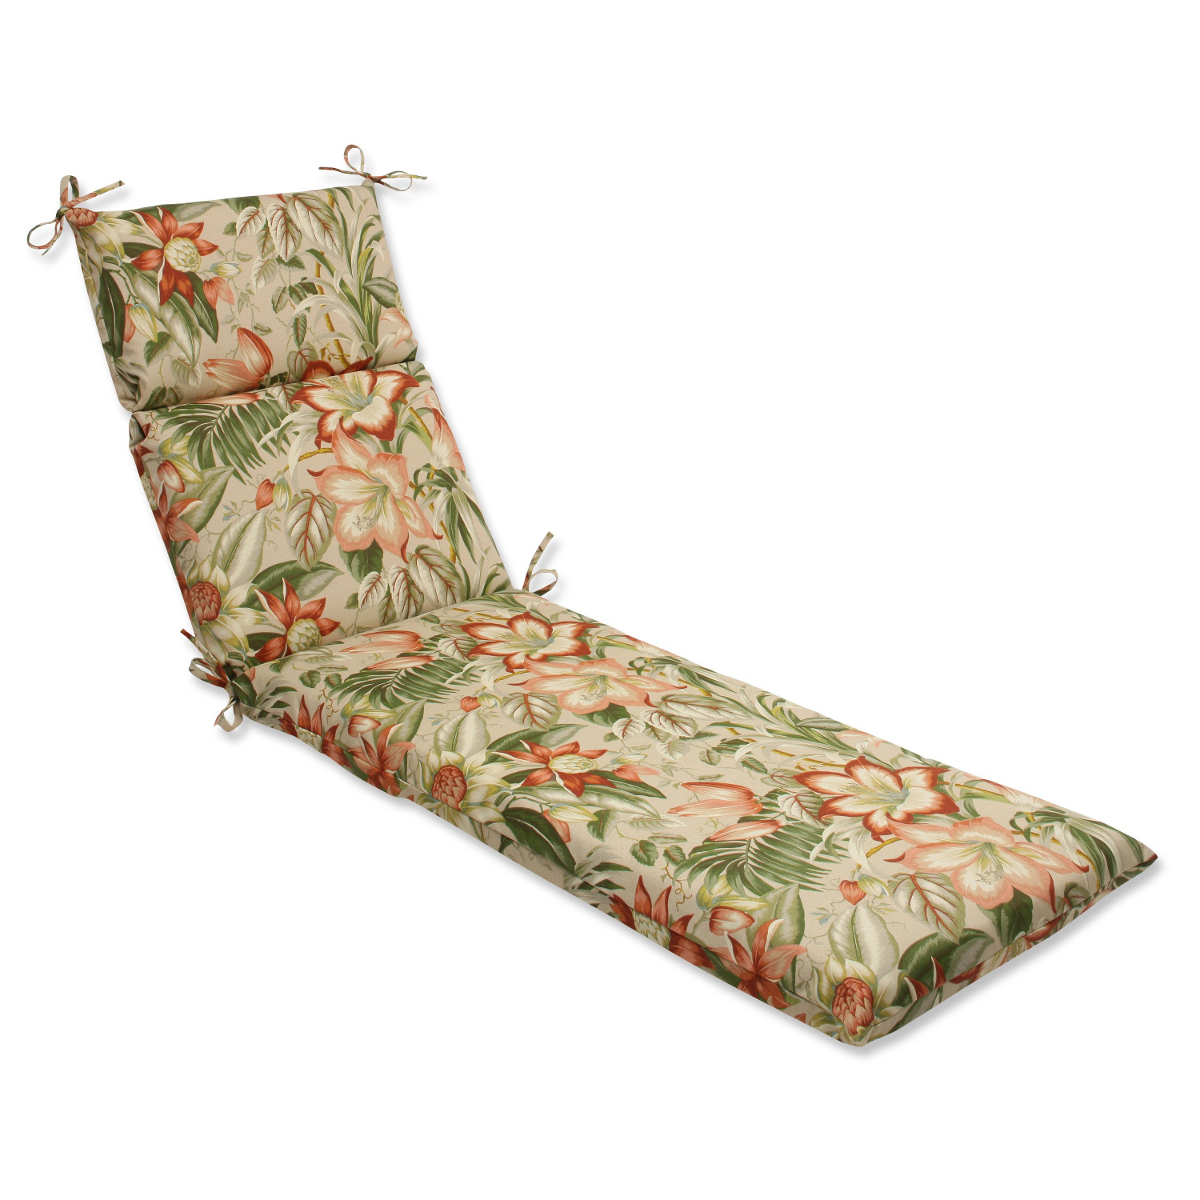 "72.5"" Green, Tan and Coral Tropical Garden Decorative Outdoor Patio Chaise Lounge Cushion"